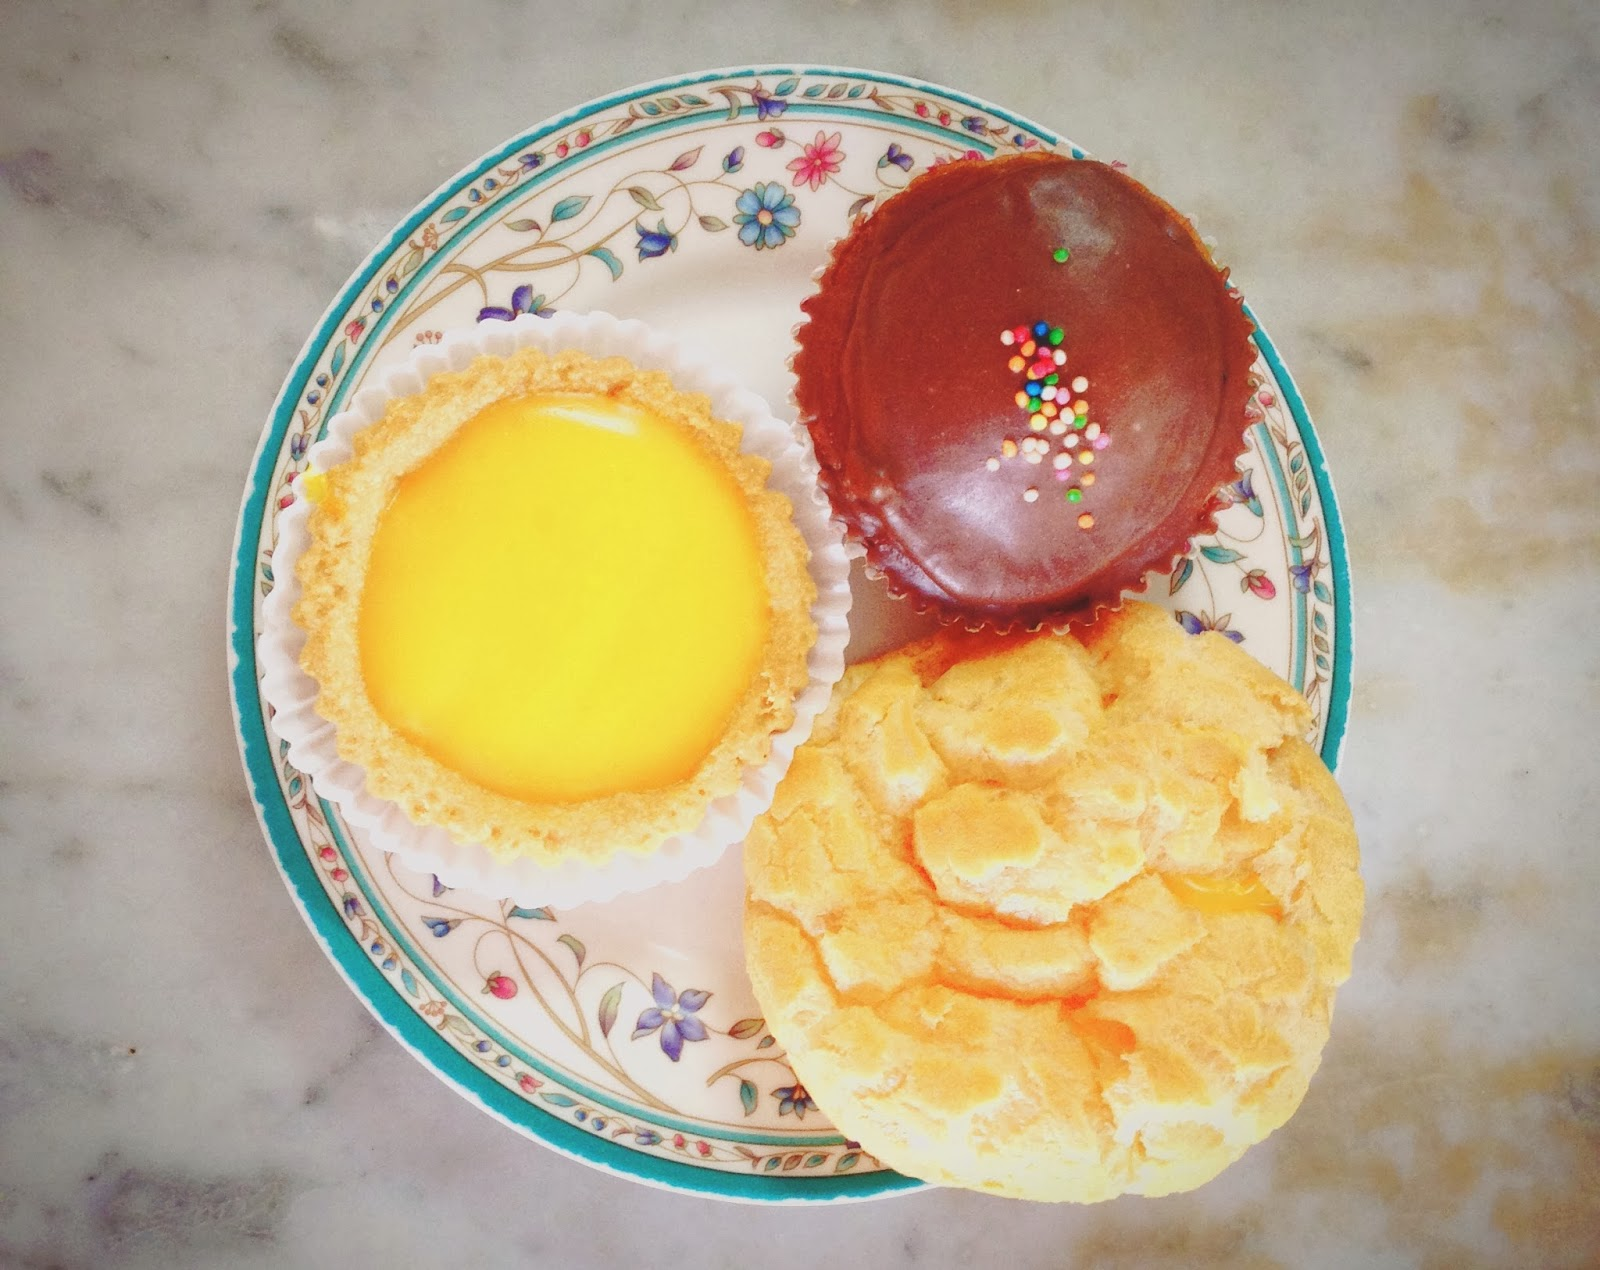 Chin Mee Chin Confectionery Cakes & Puffs